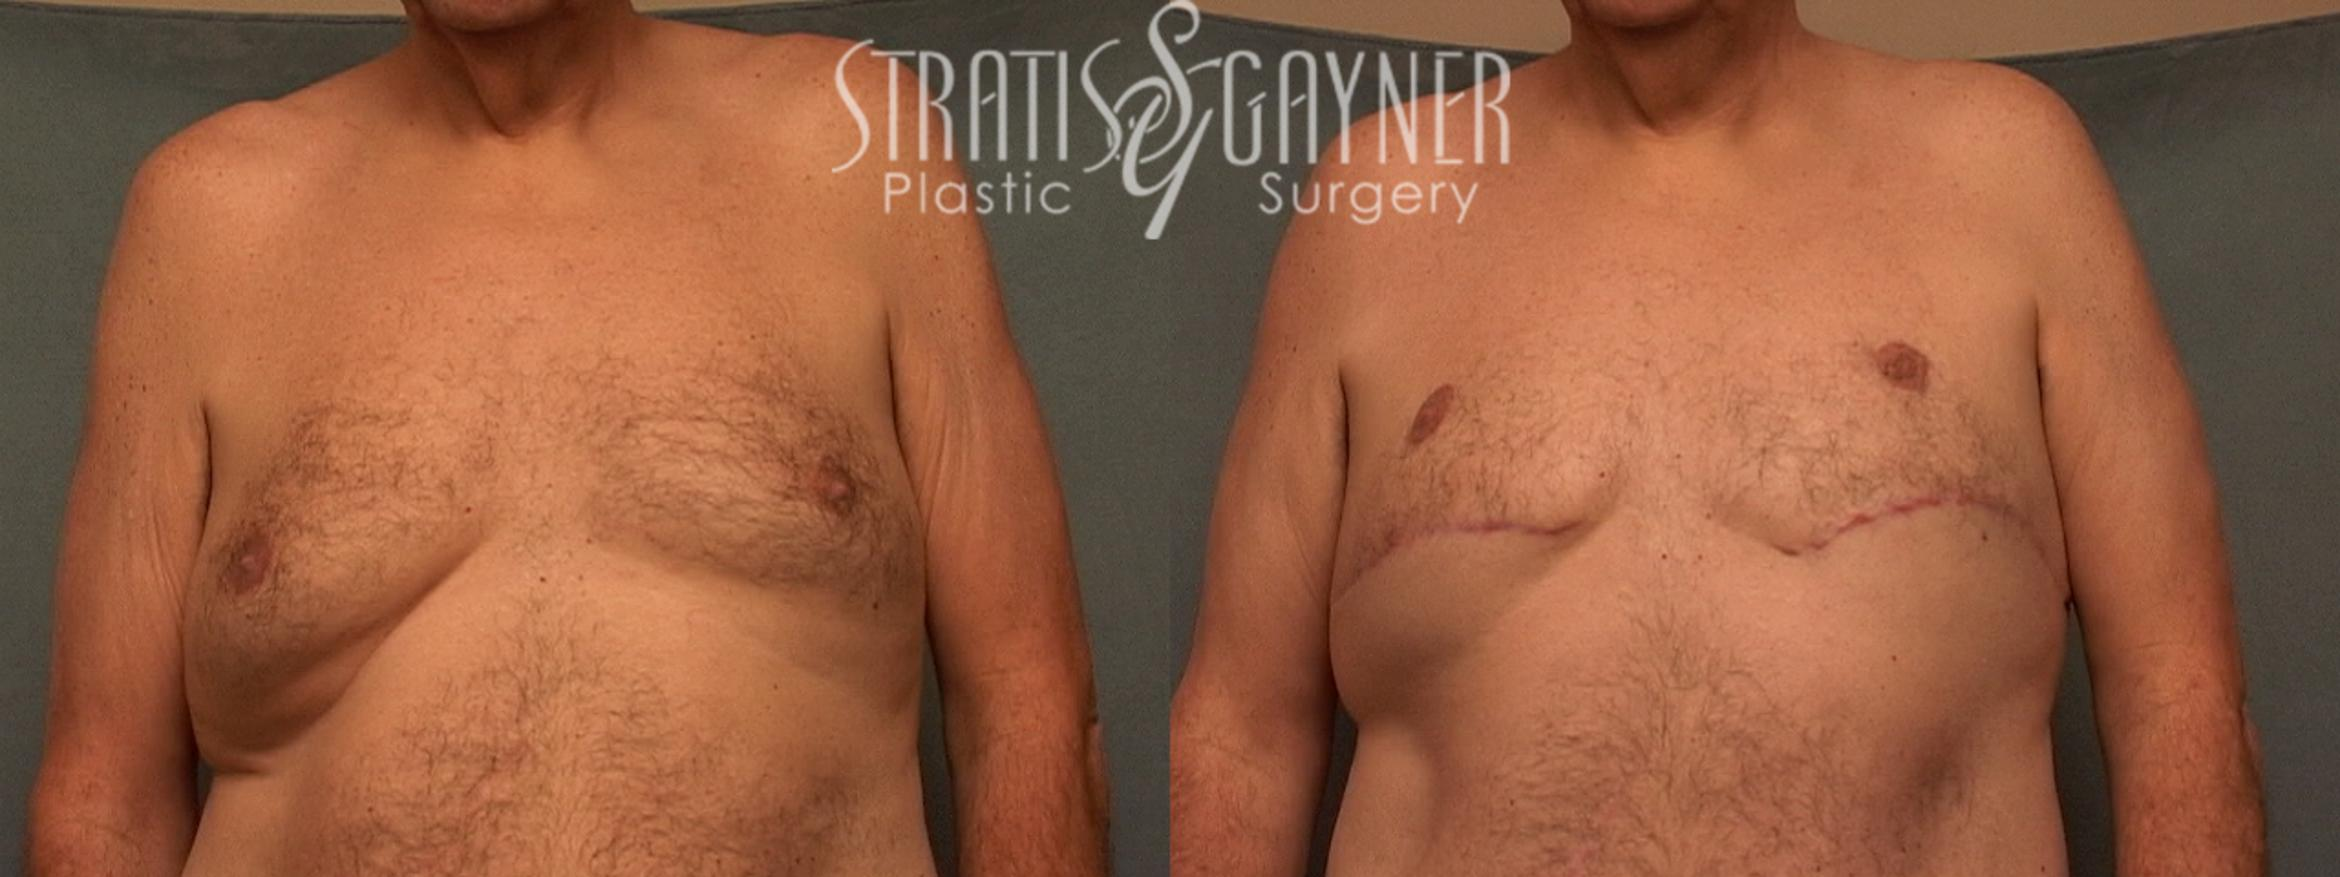 Procedures for Men Case 59 Before & After View #1 | Harrisburg, PA | Stratis Gayner Plastic Surgery